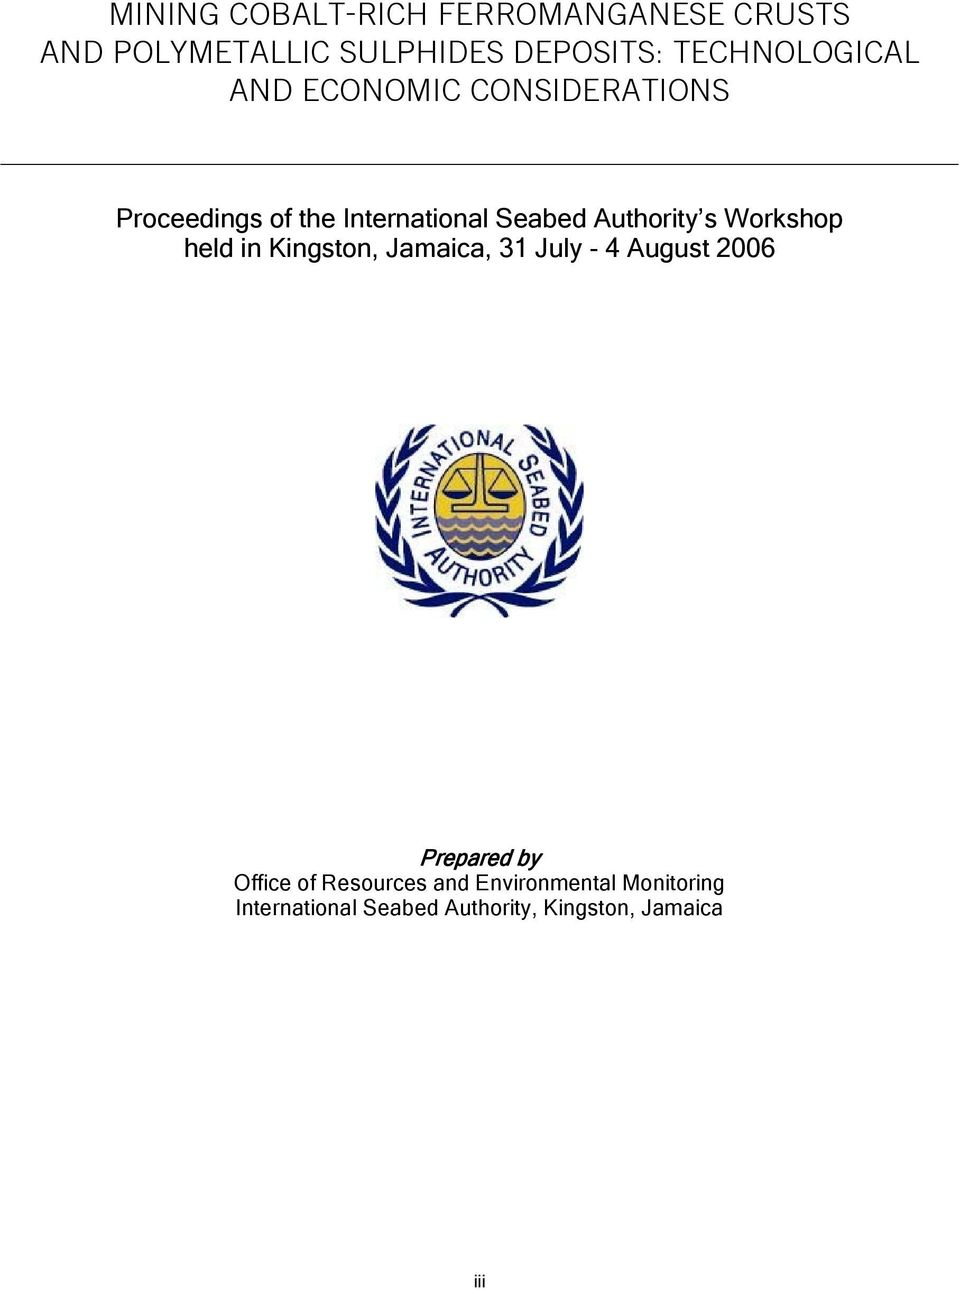 Authority s Workshop held in Kingston, Jamaica, 31 July - 4 August 2006 Prepared by